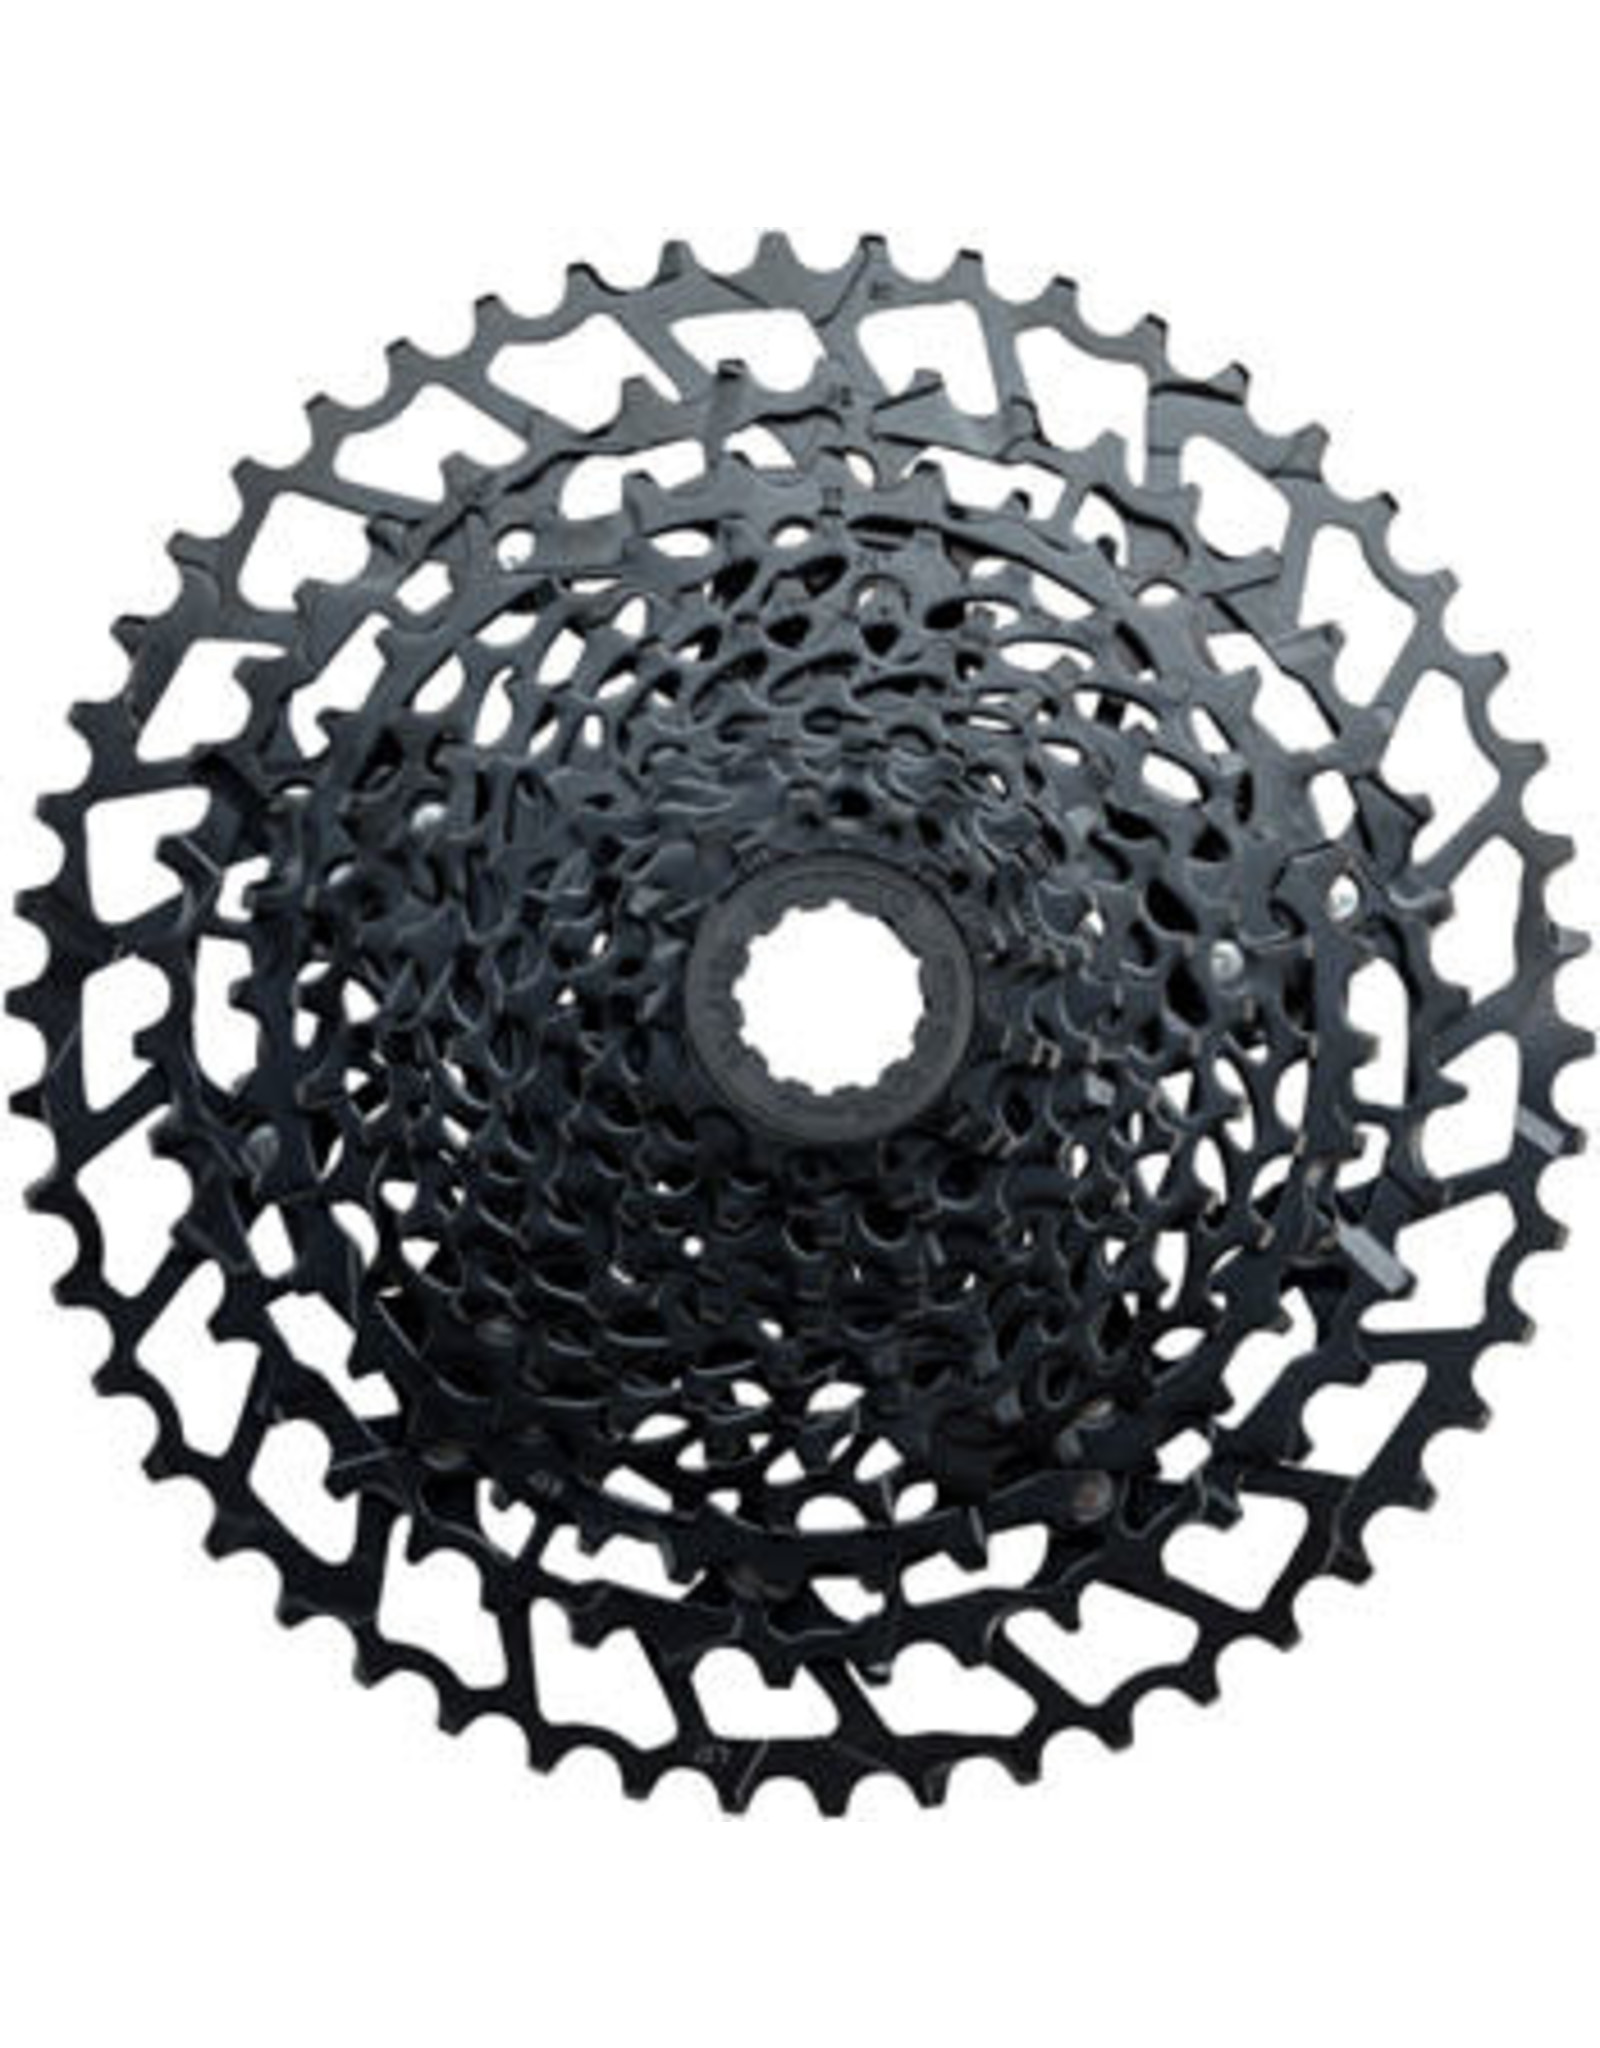 SRAM SRAM NX Eagle Cassette PG-1230 - 11-50t - 12 speed